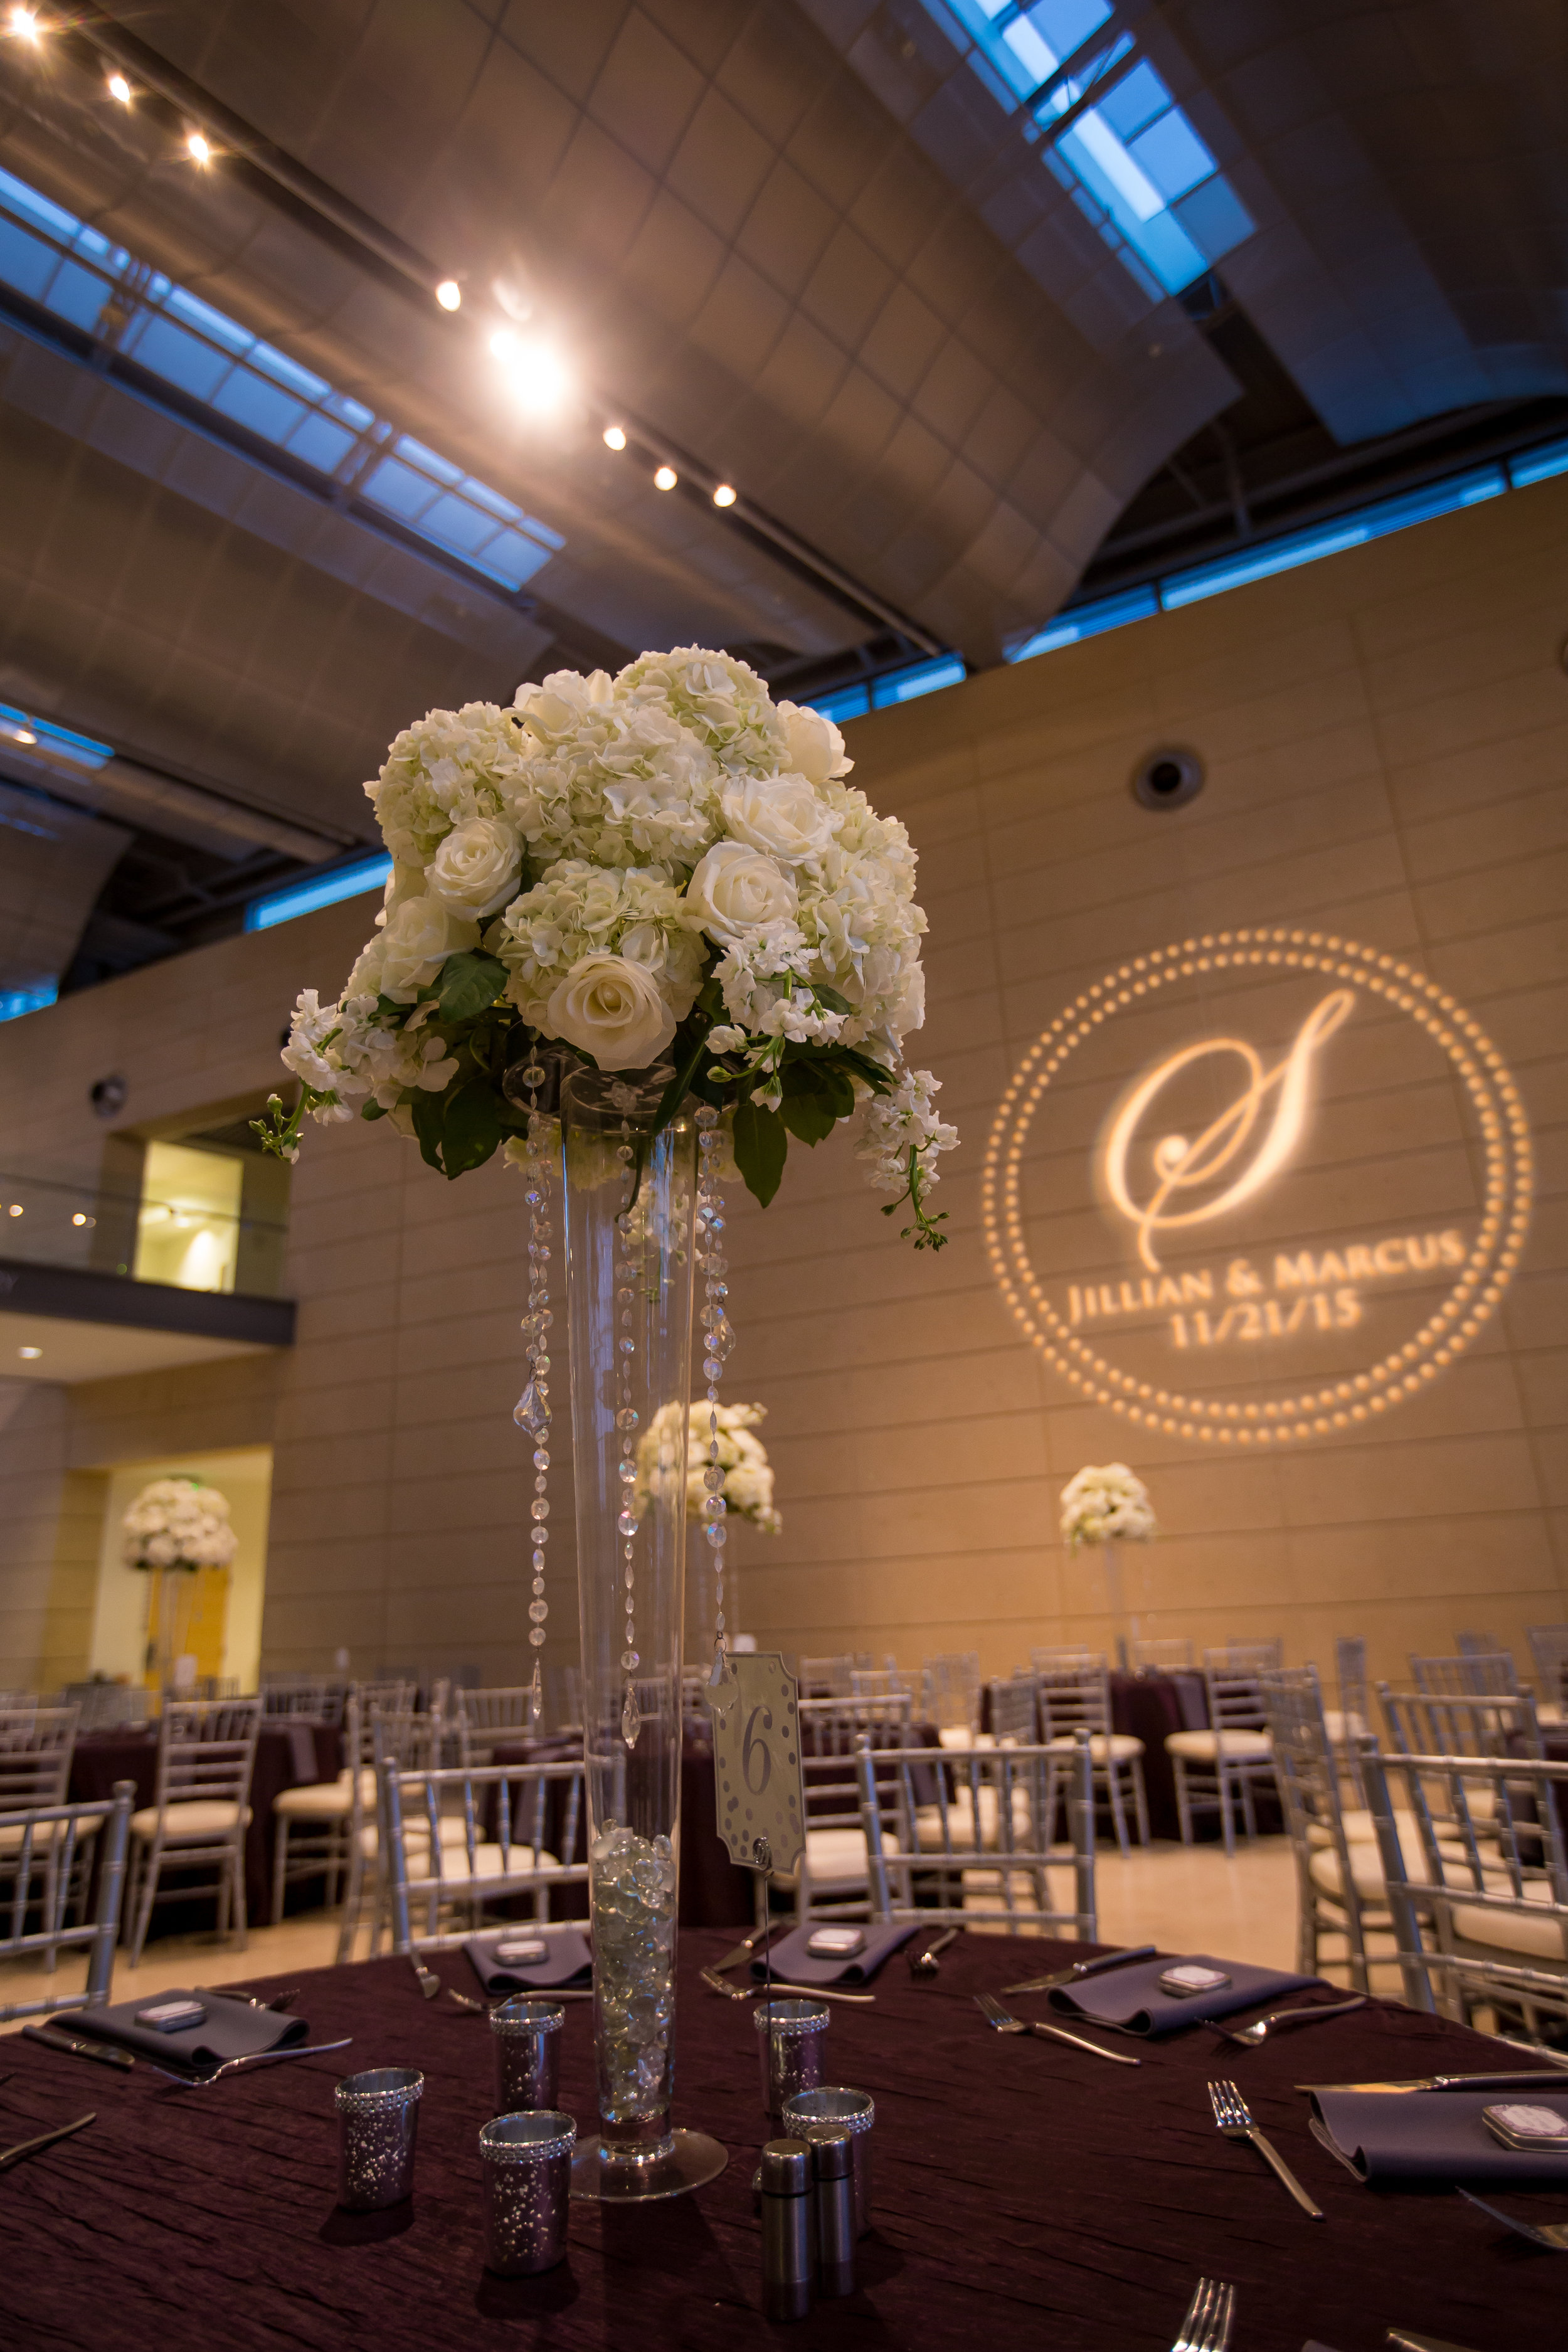 Classic white flowers with striking purple accents with sparkling crystals and candlelight elevated the ceremony and reception decor.